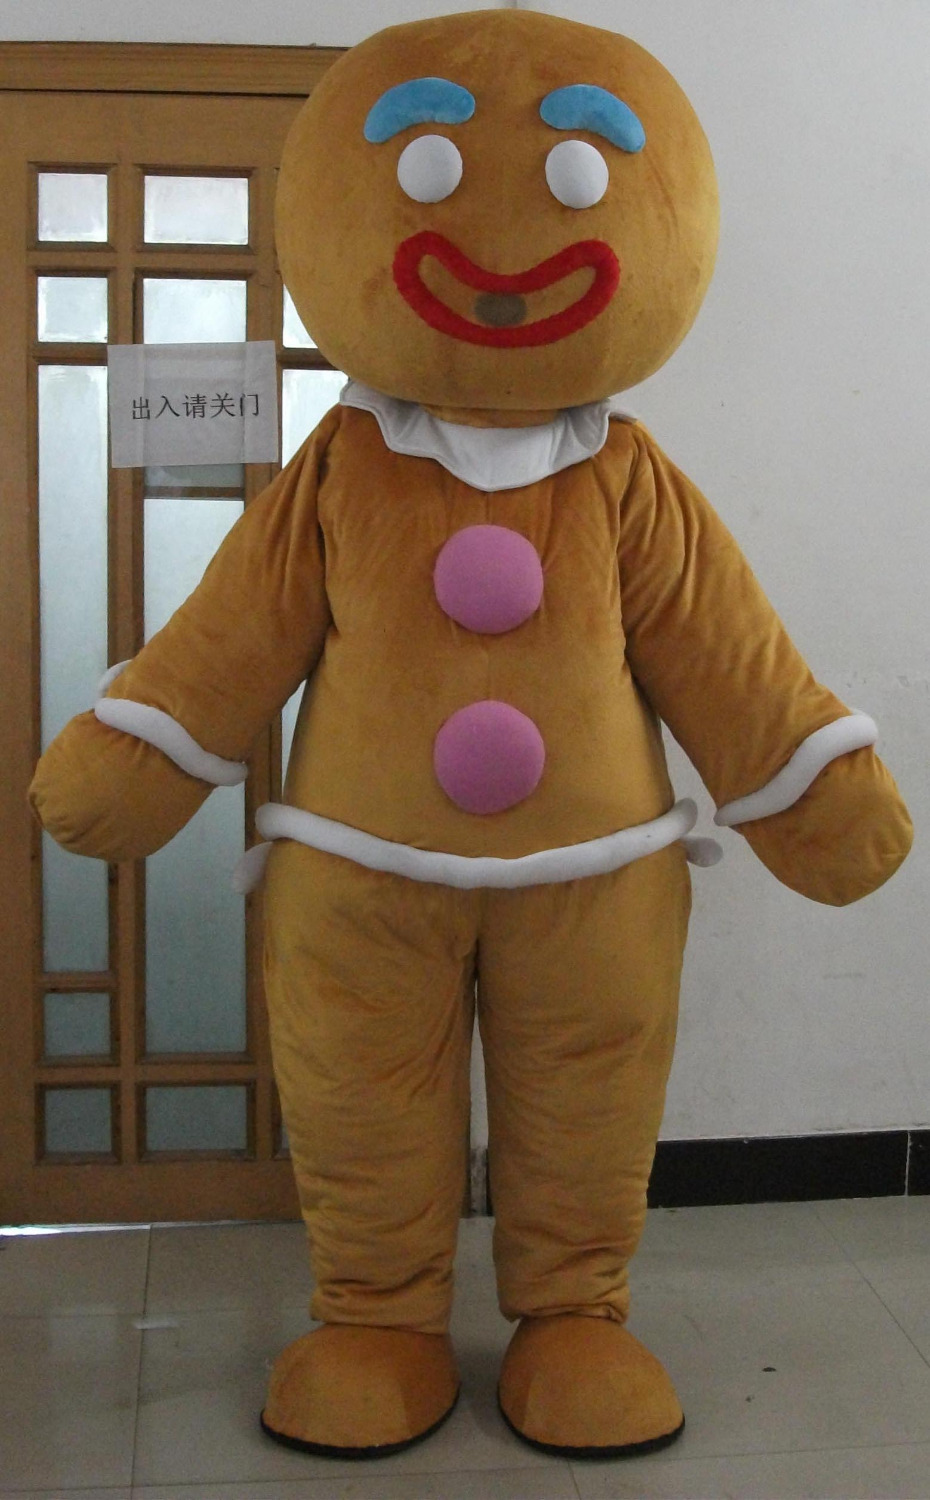 Online Shop adult Christmas gingerbread man costume mascot | Aliexpress Mobile & Online Shop adult Christmas gingerbread man costume mascot ...